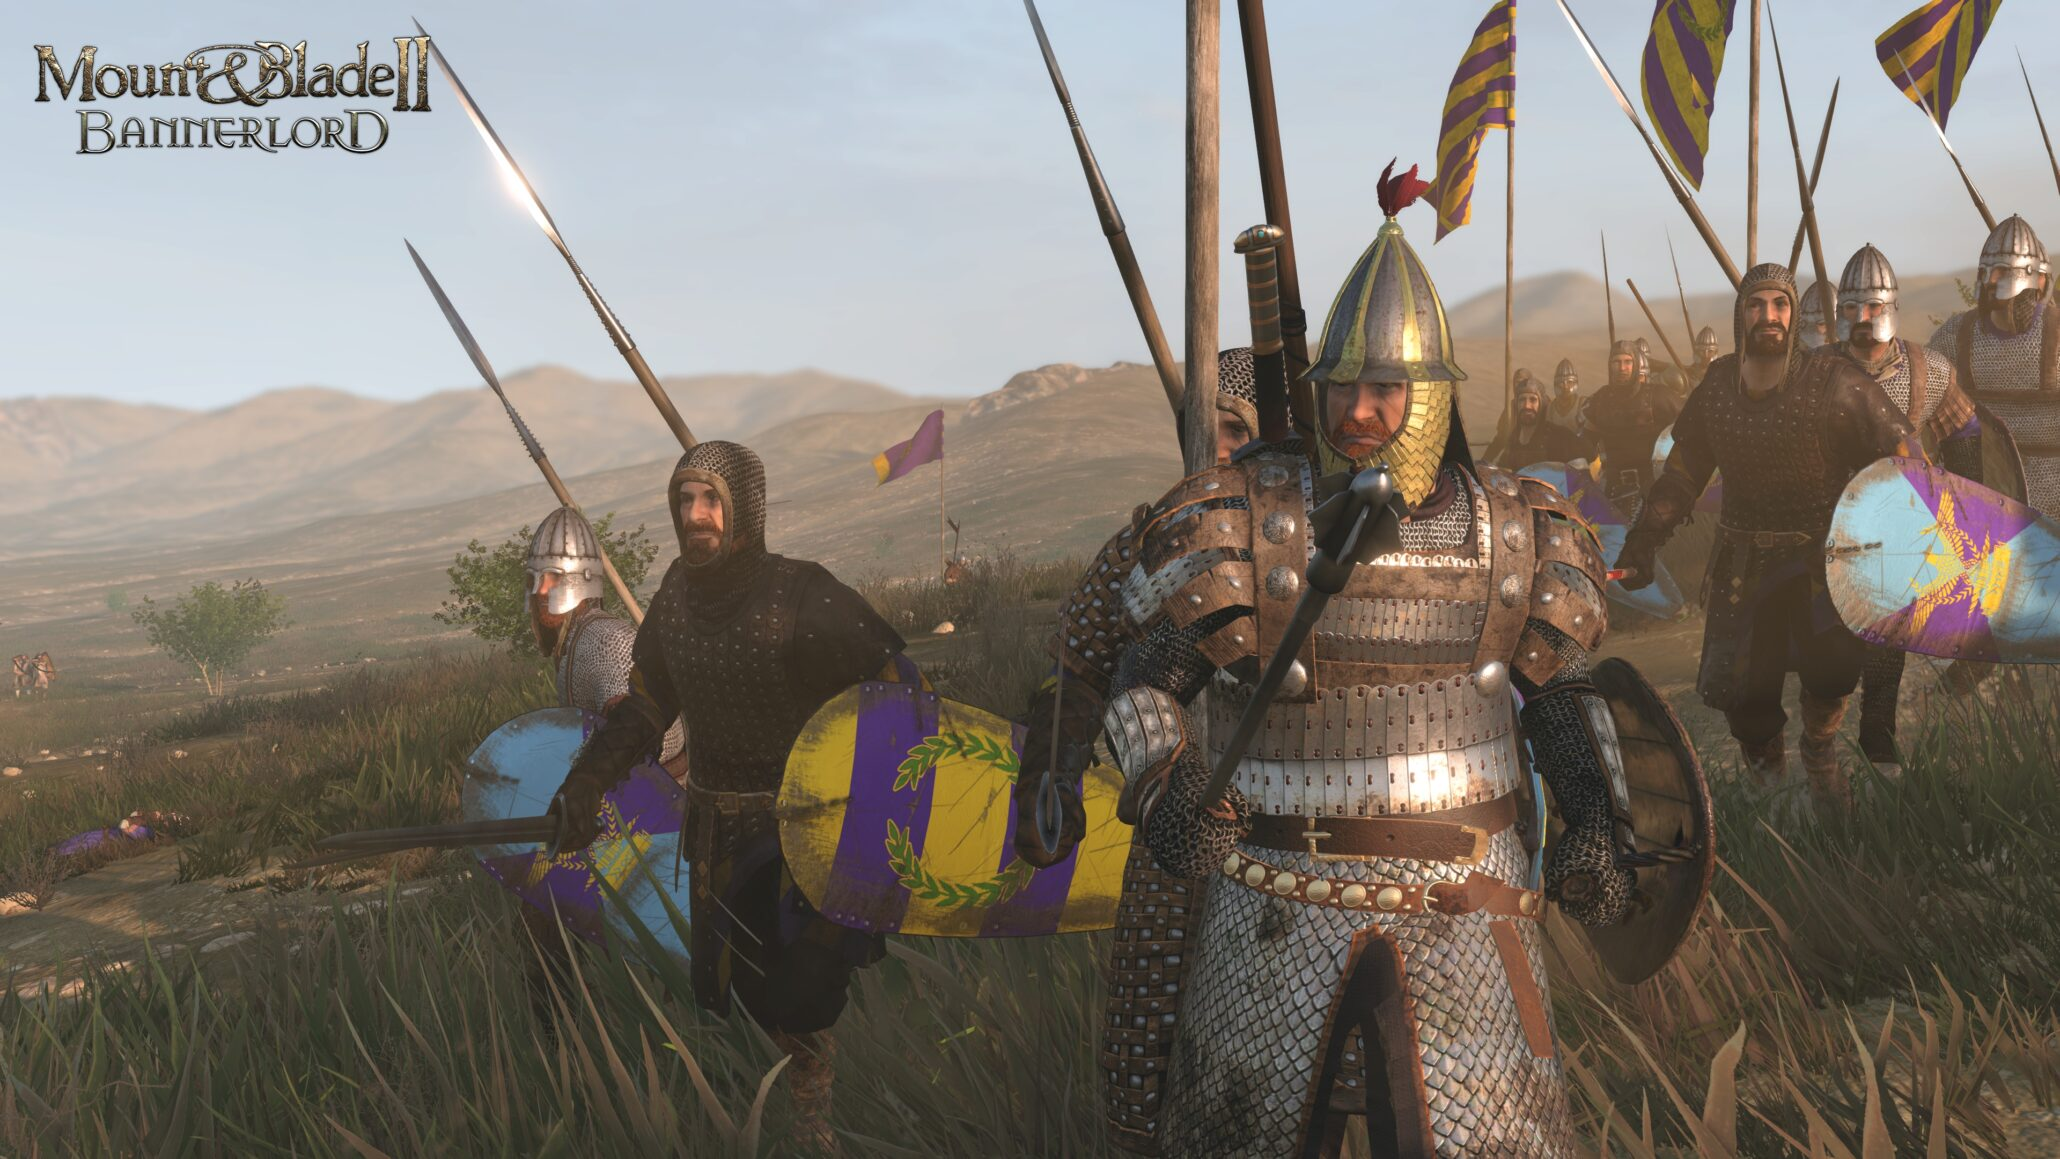 Mount & Blade II: Bannerlord Leaps onto Steam Early Access